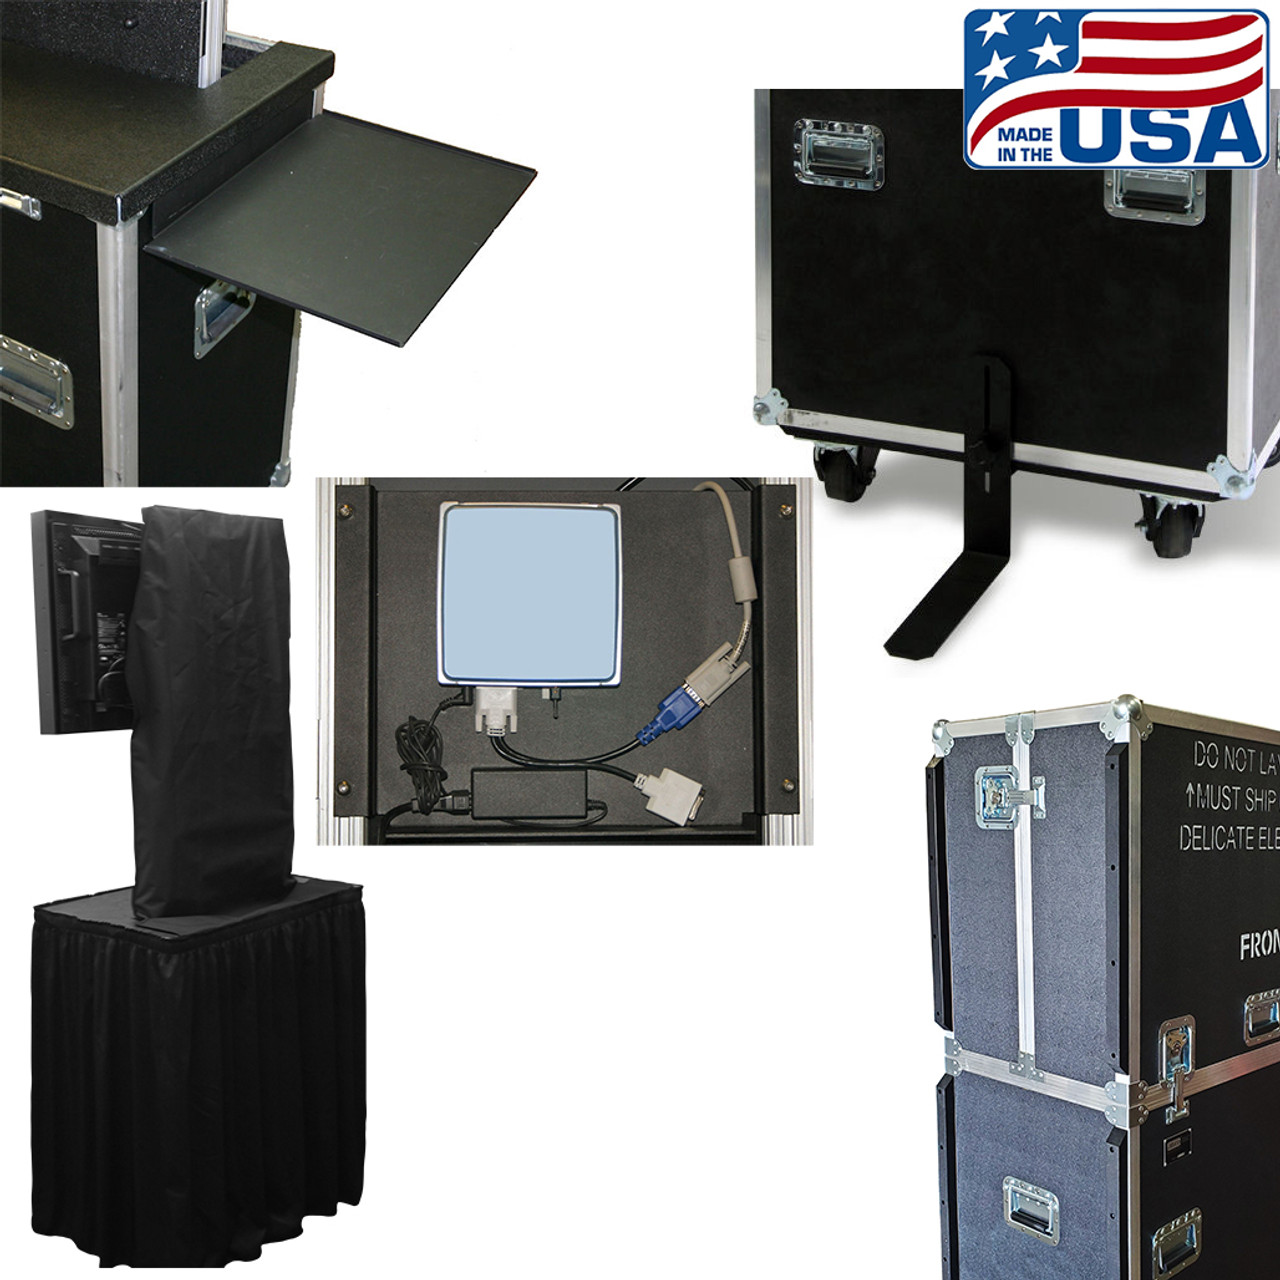 EZ-LIFT and RotoLift Accessories. Stabilizer kit, side glides or bumpers, mounting plate, hanging equipment shelf